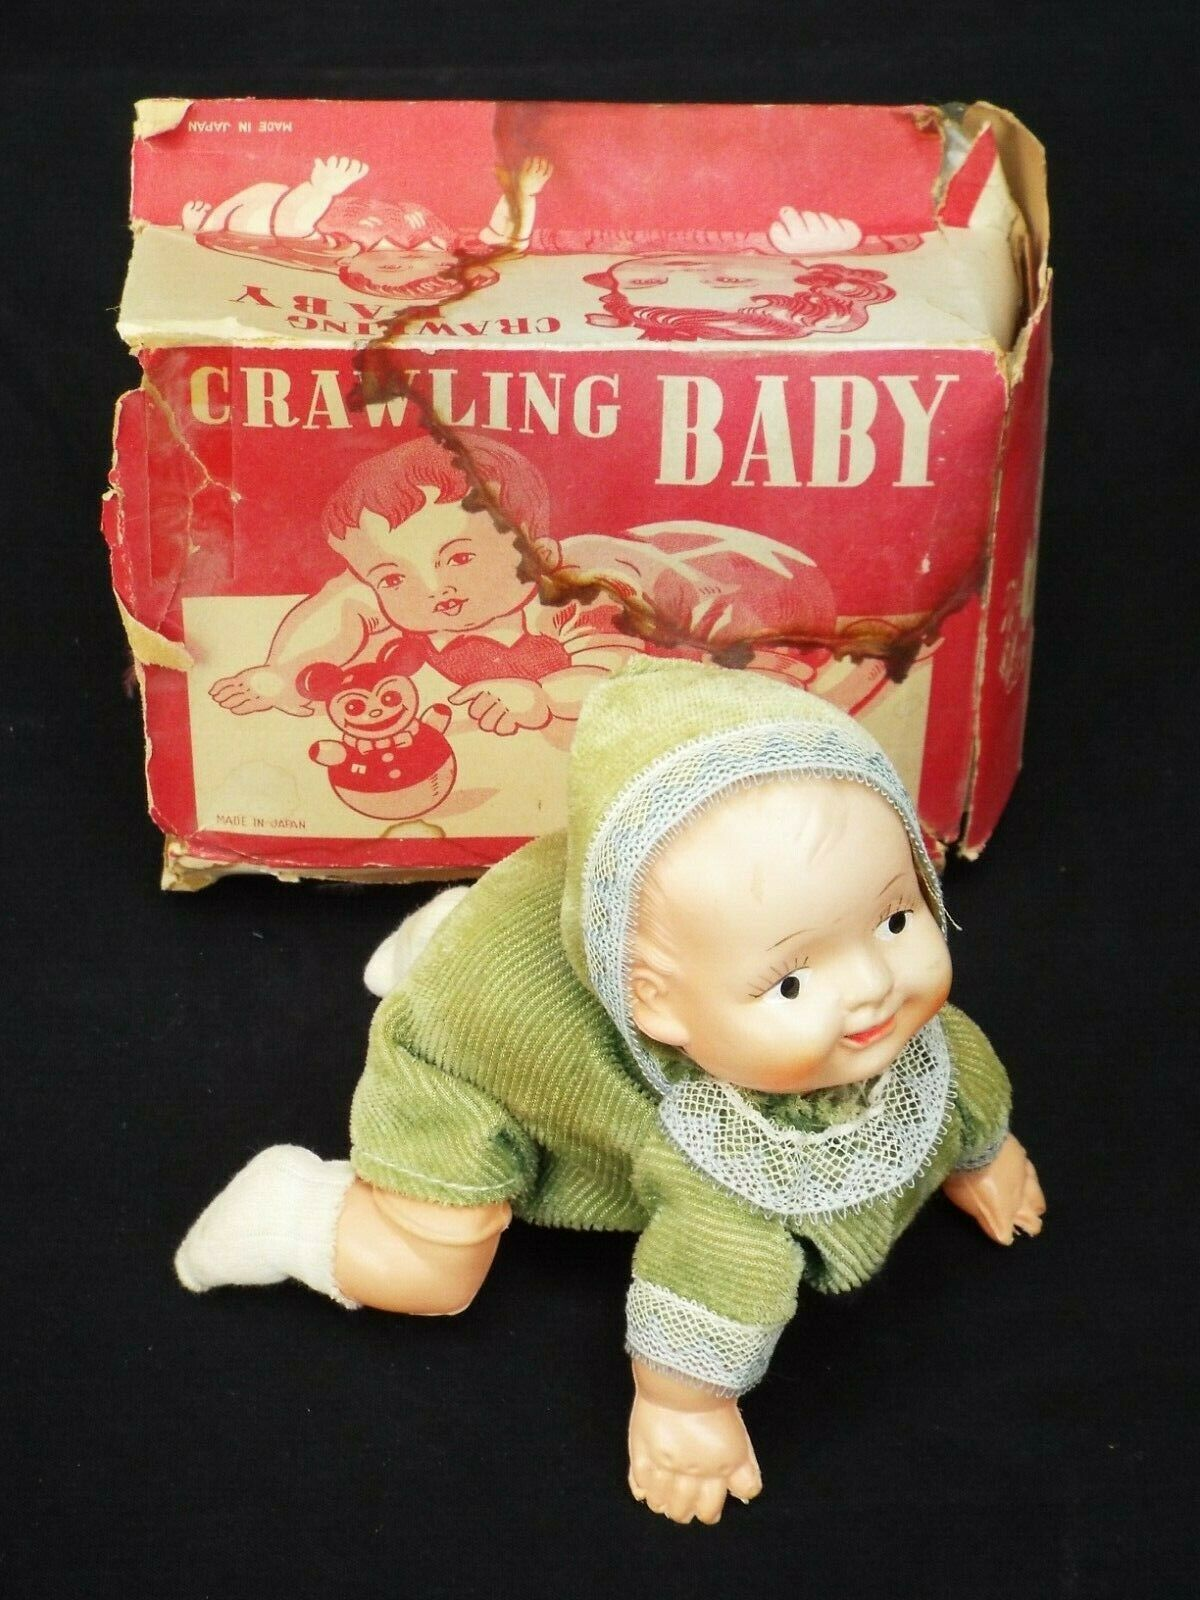 Vintage Celluloid Windup Toy  Crawling Baby  with Box Occupied Japan